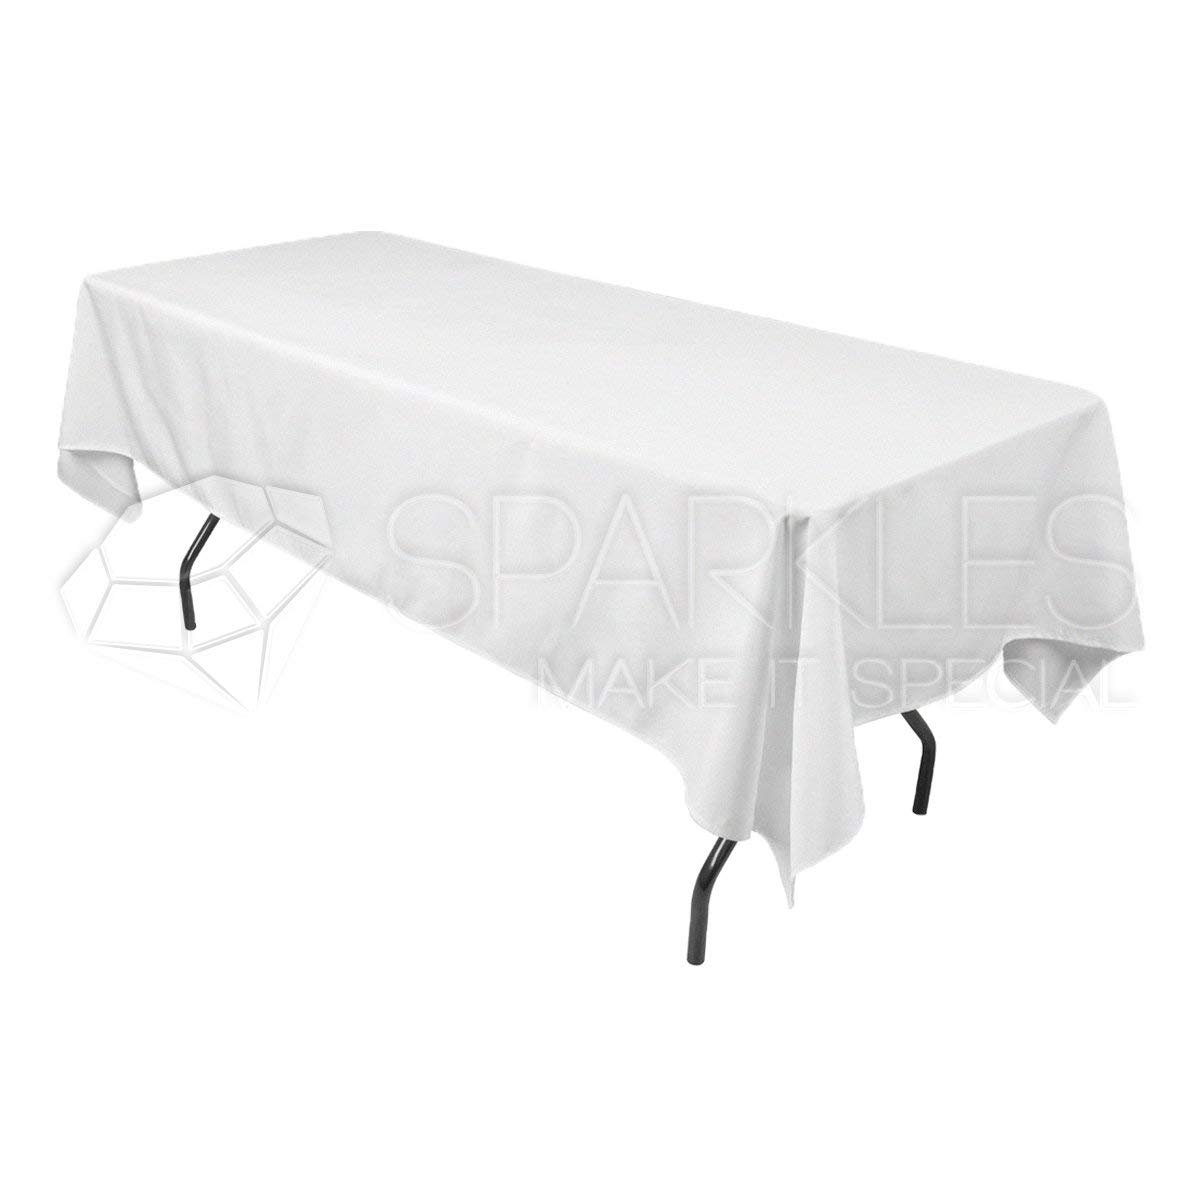 """Sparkles Make It Special 5-pcs 60"""" x 102"""" Inch Rectangular Polyester Cloth Fabric Linen Tablecloth - Wedding Reception Restaurant Banquet Party - Machine Washable - White"""